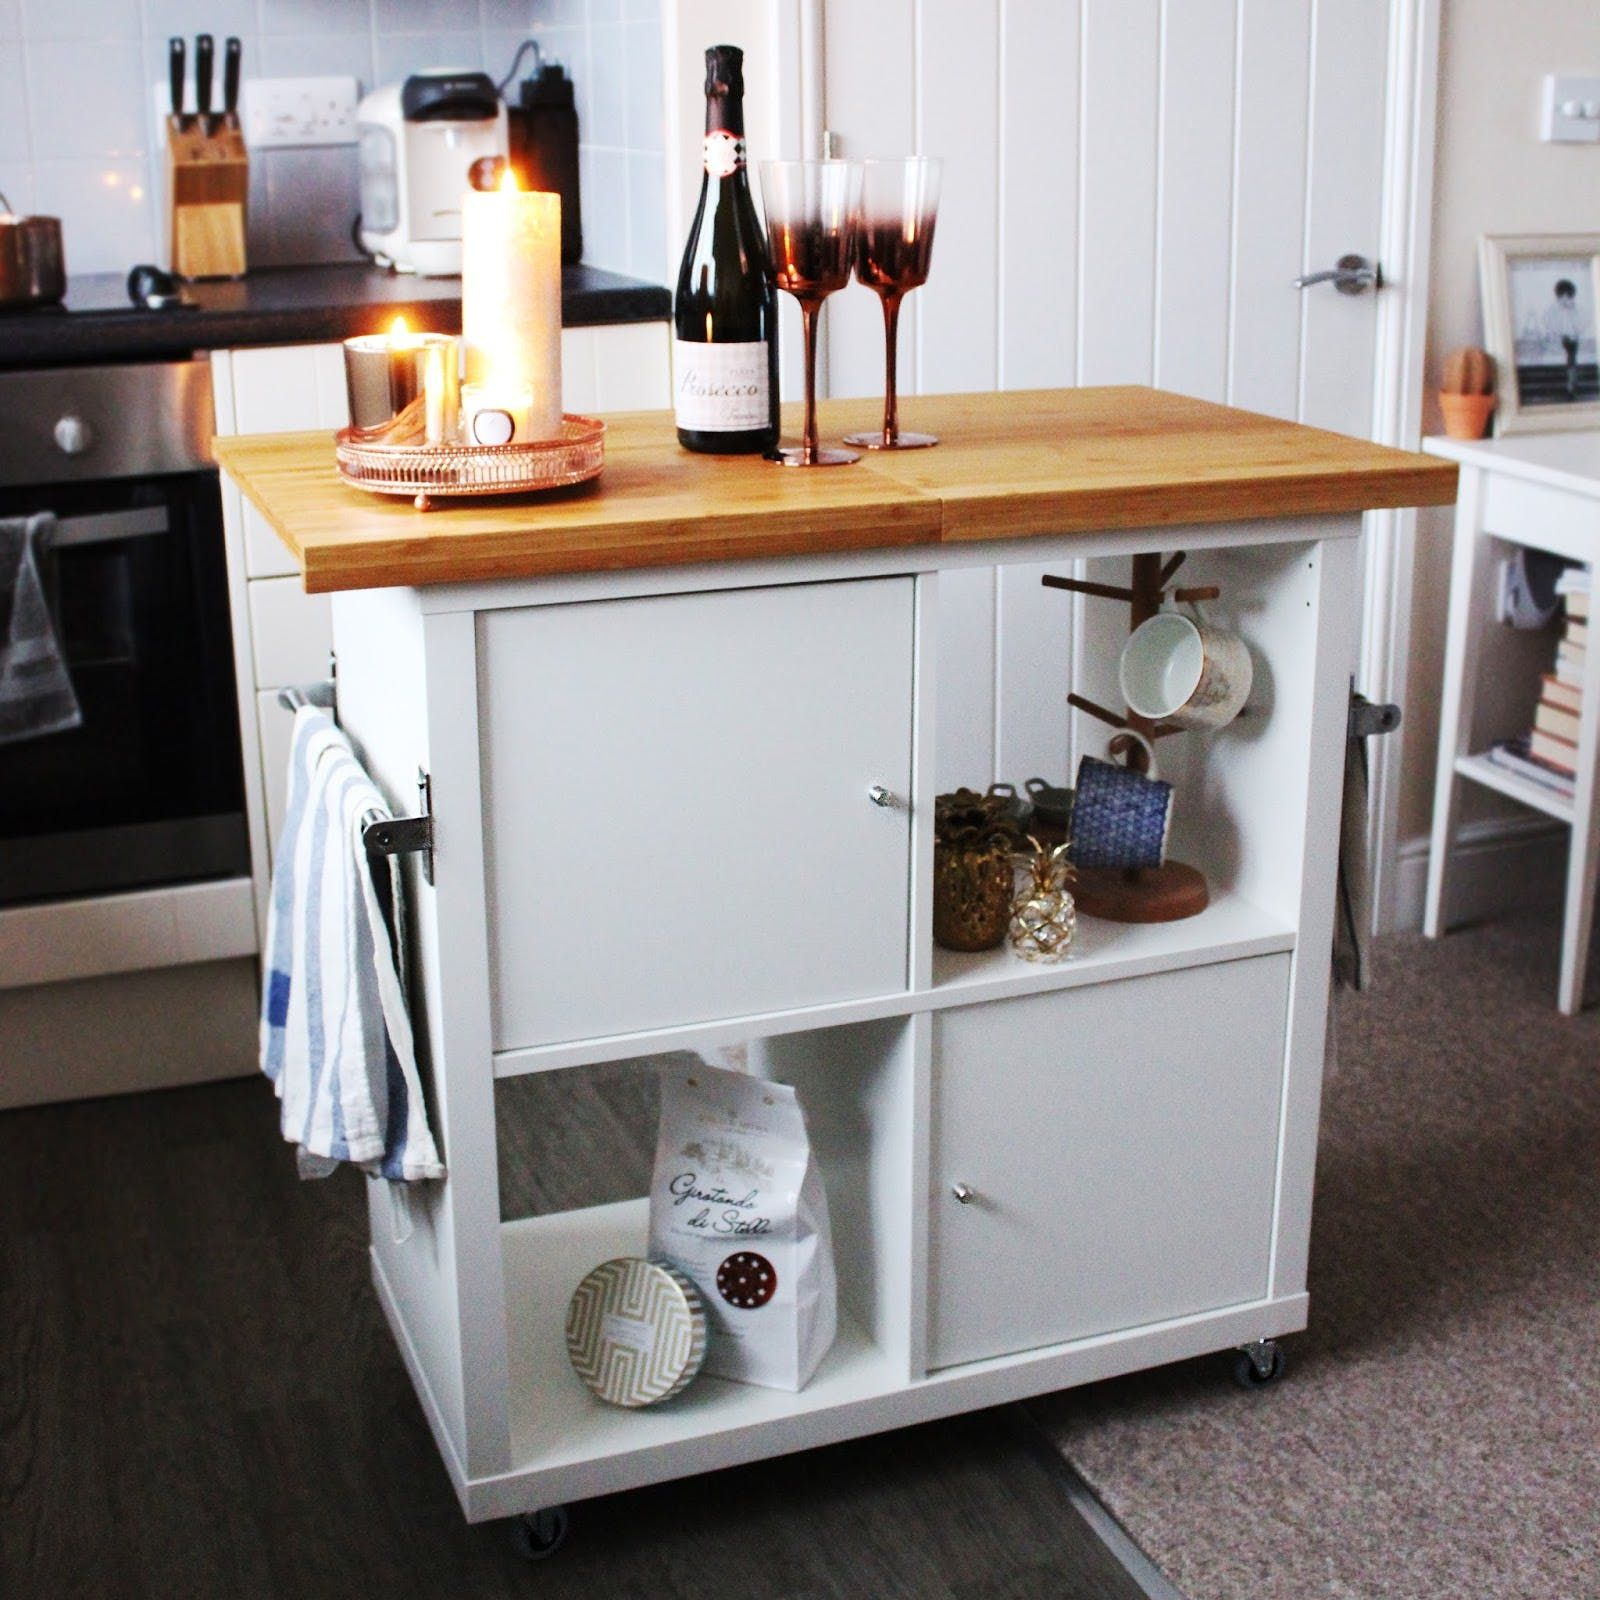 Make It: Kitchen Islands Created With IKEA Products